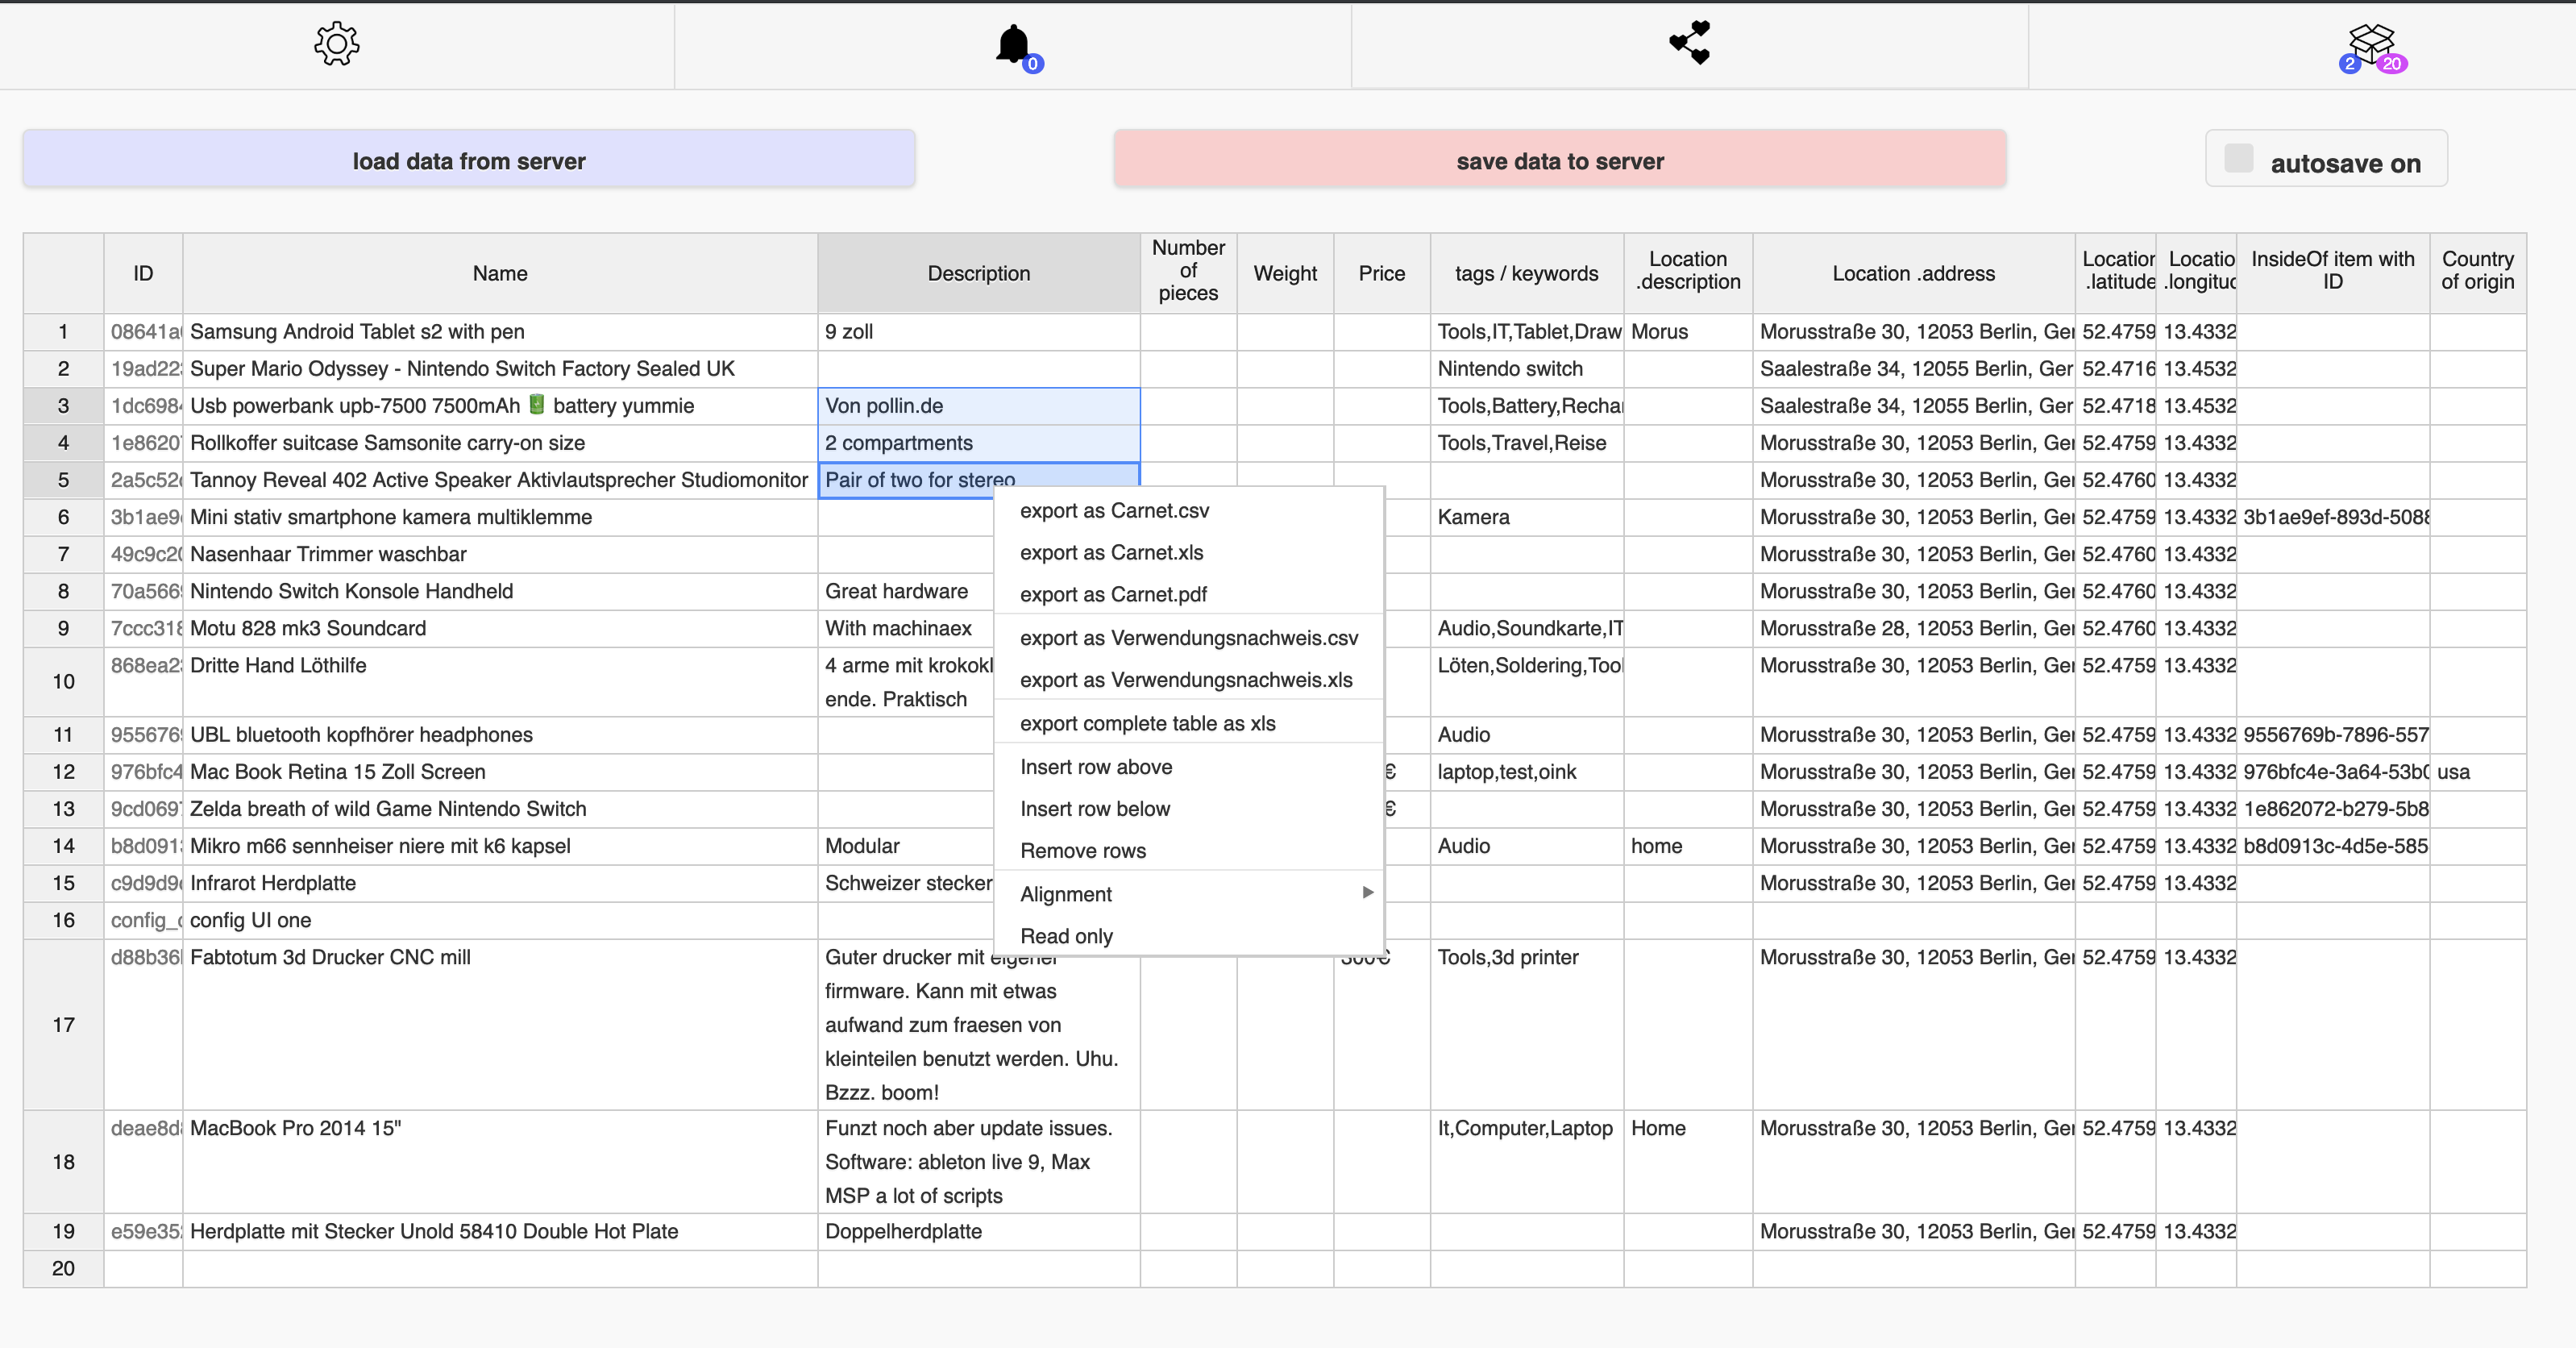 screenshot dingsda spreadsheet view